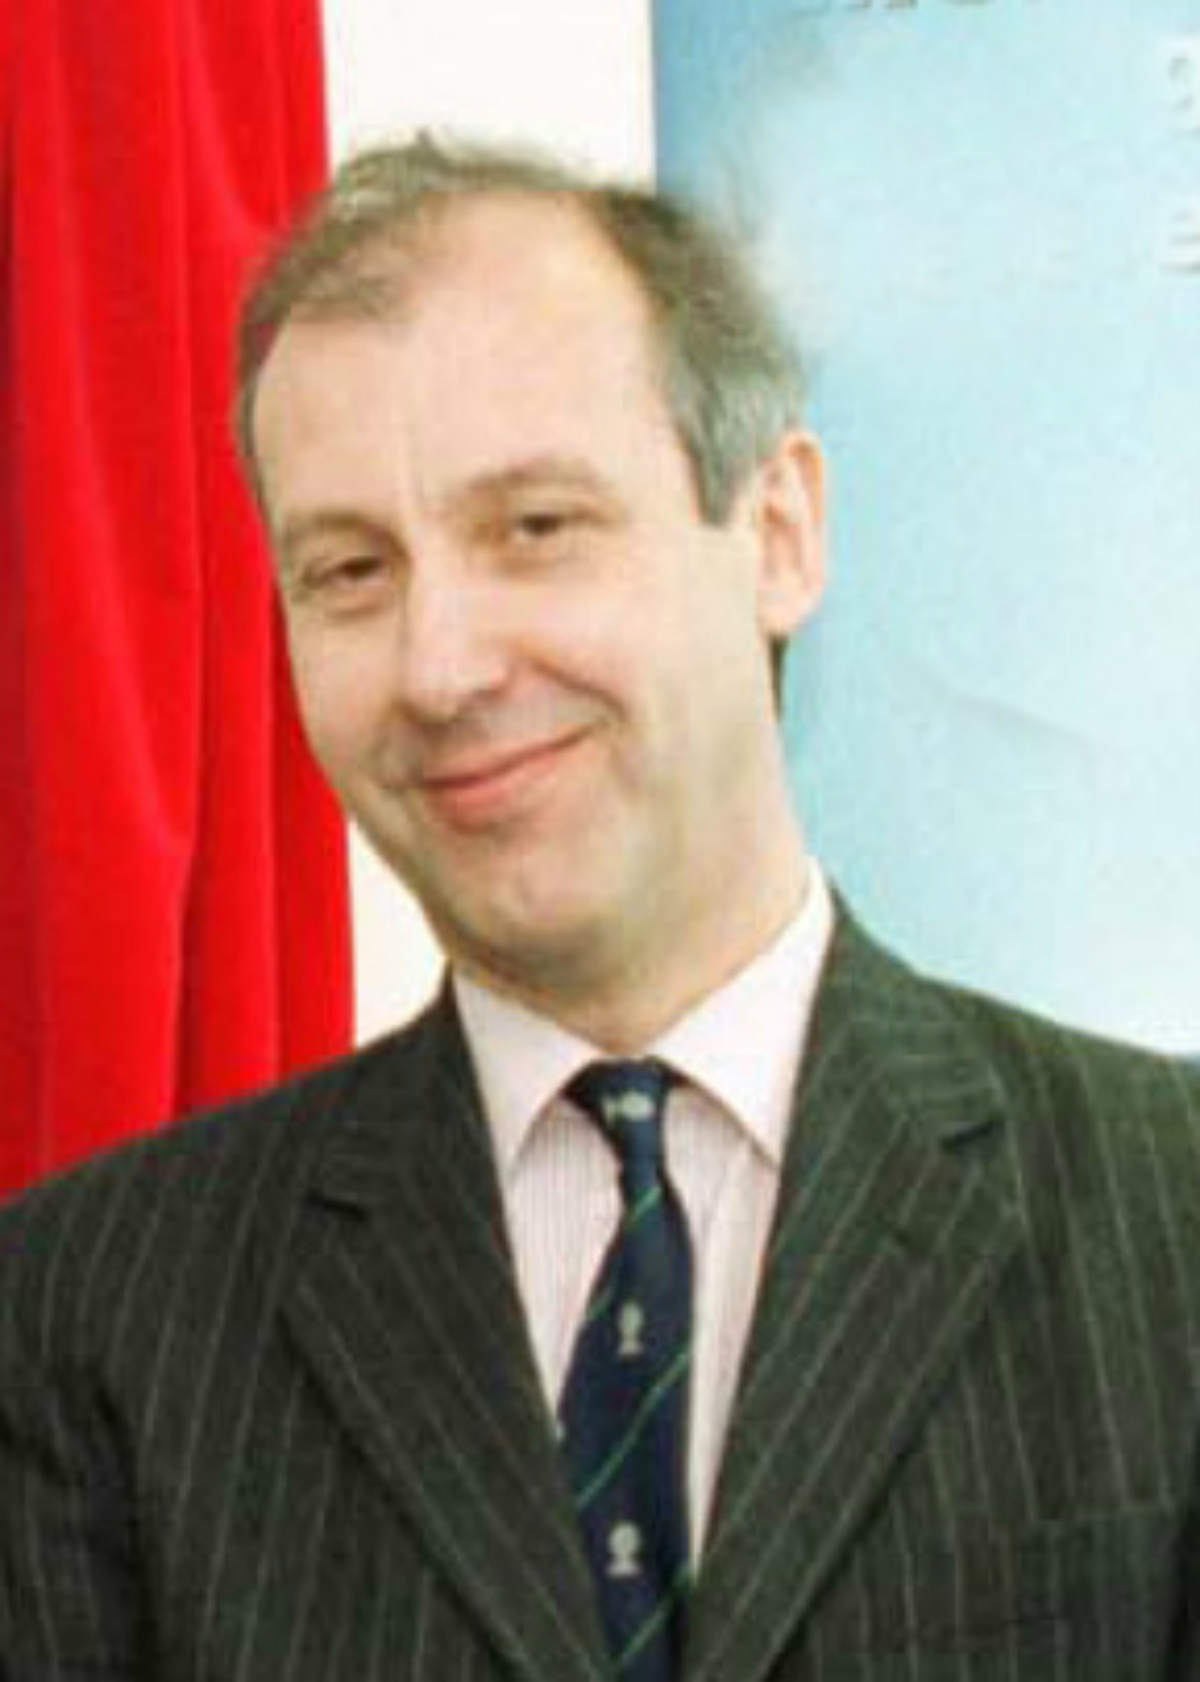 Assembly Member calls for Pembrokeshire council chief exec to be suspended